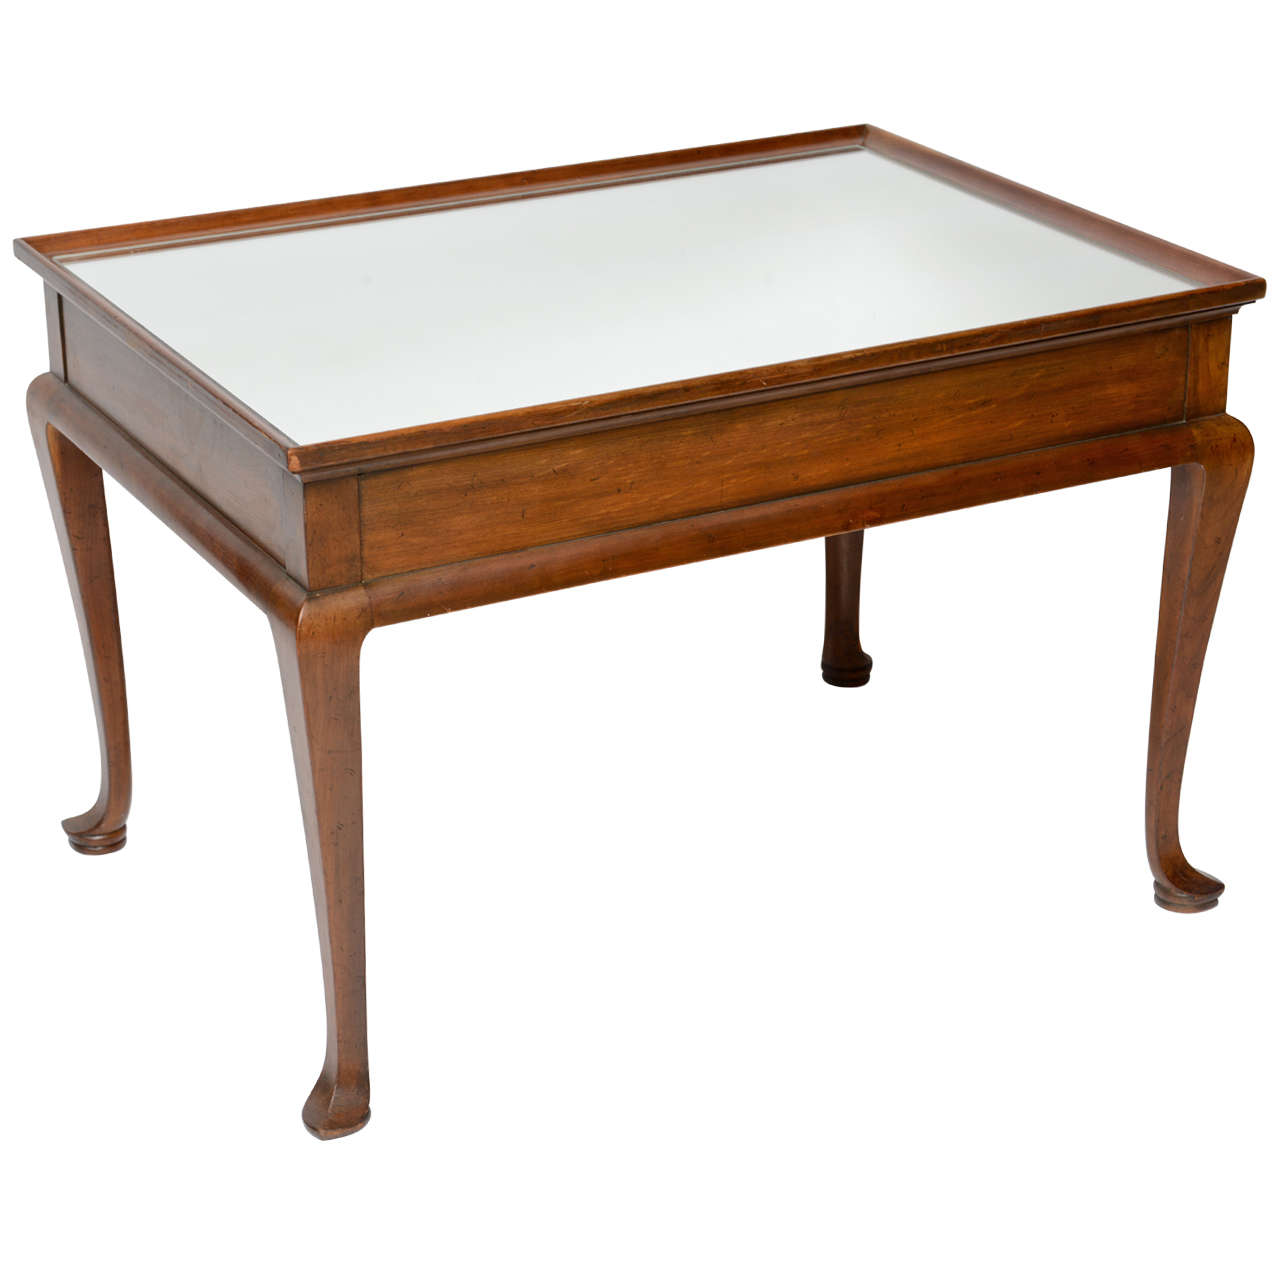 Queen anne style coffee table by baker at 1stdibs Baker coffee table